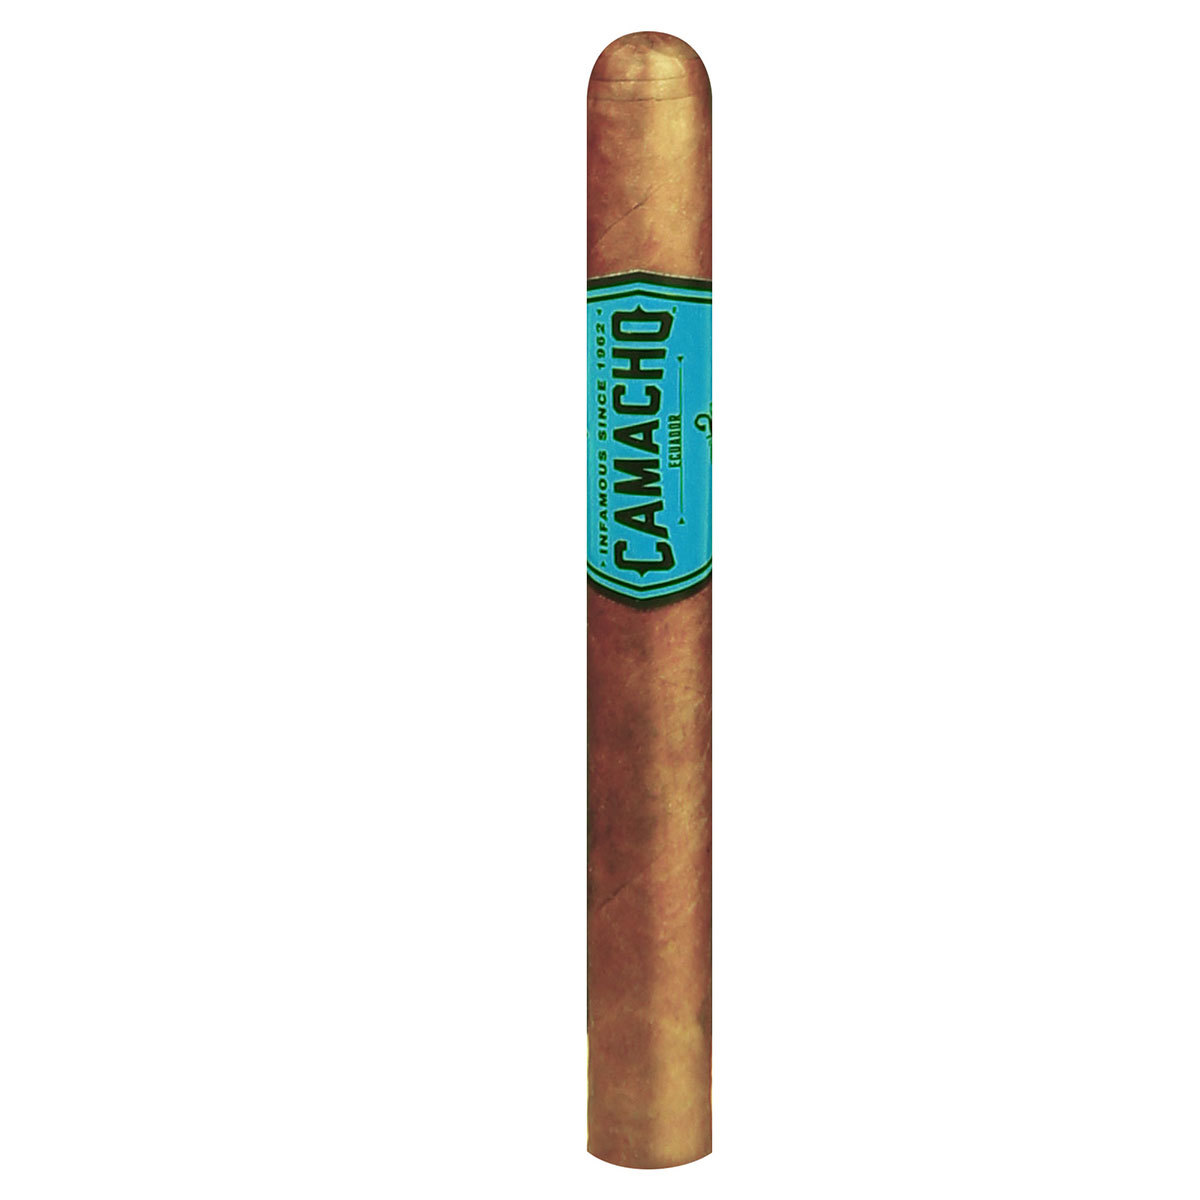 Camacho Ecuador Churchill Single